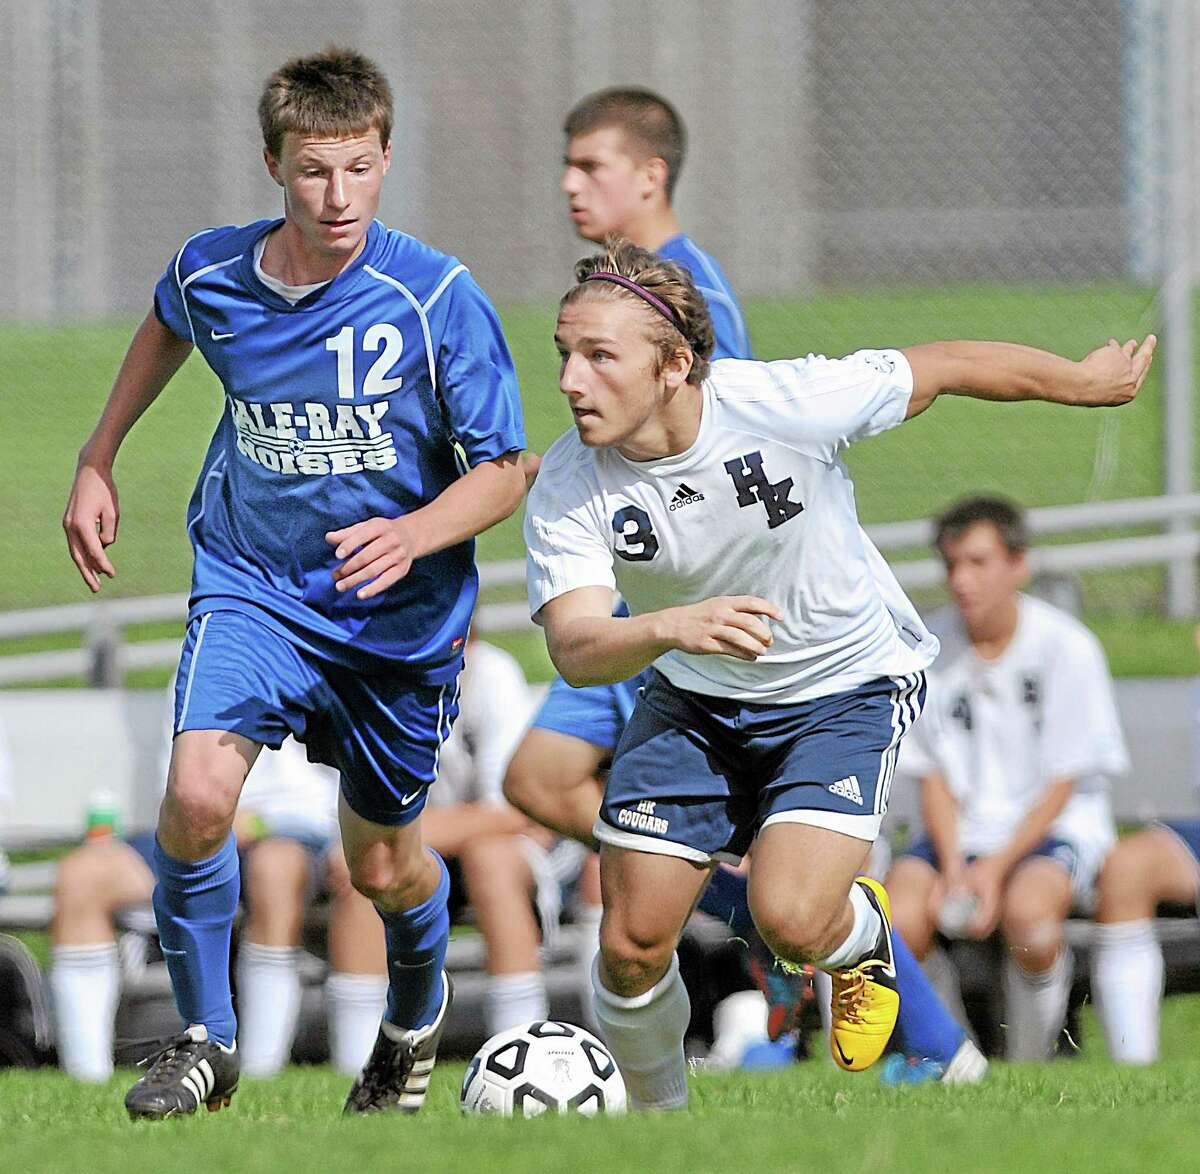 Haddam-Killingworth forward/midfielder Ryan Henderson moves the ball around Hale-Ray's Nick Pease in the second half of Monday's game in Higganum. The Little Noises won, 2-1.